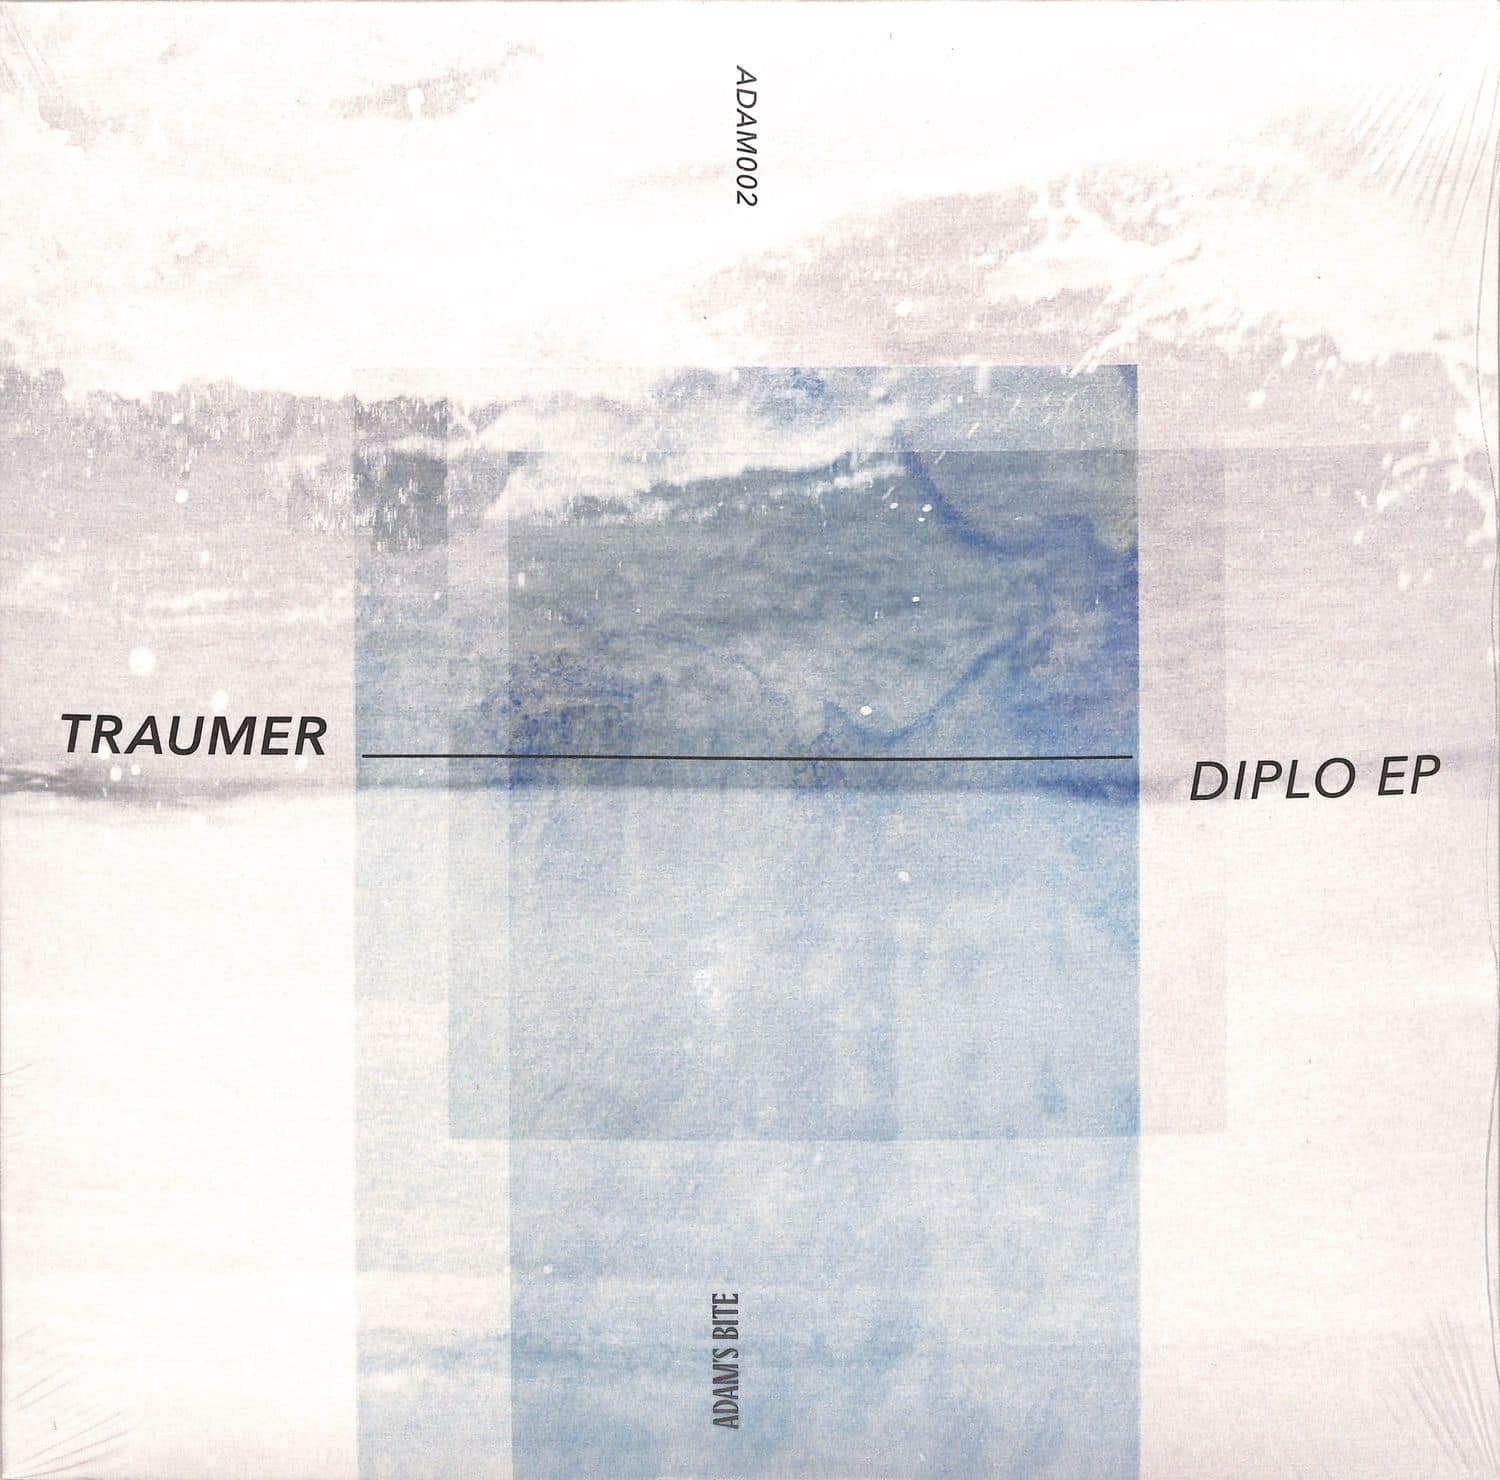 Traumer - DIPLO EP